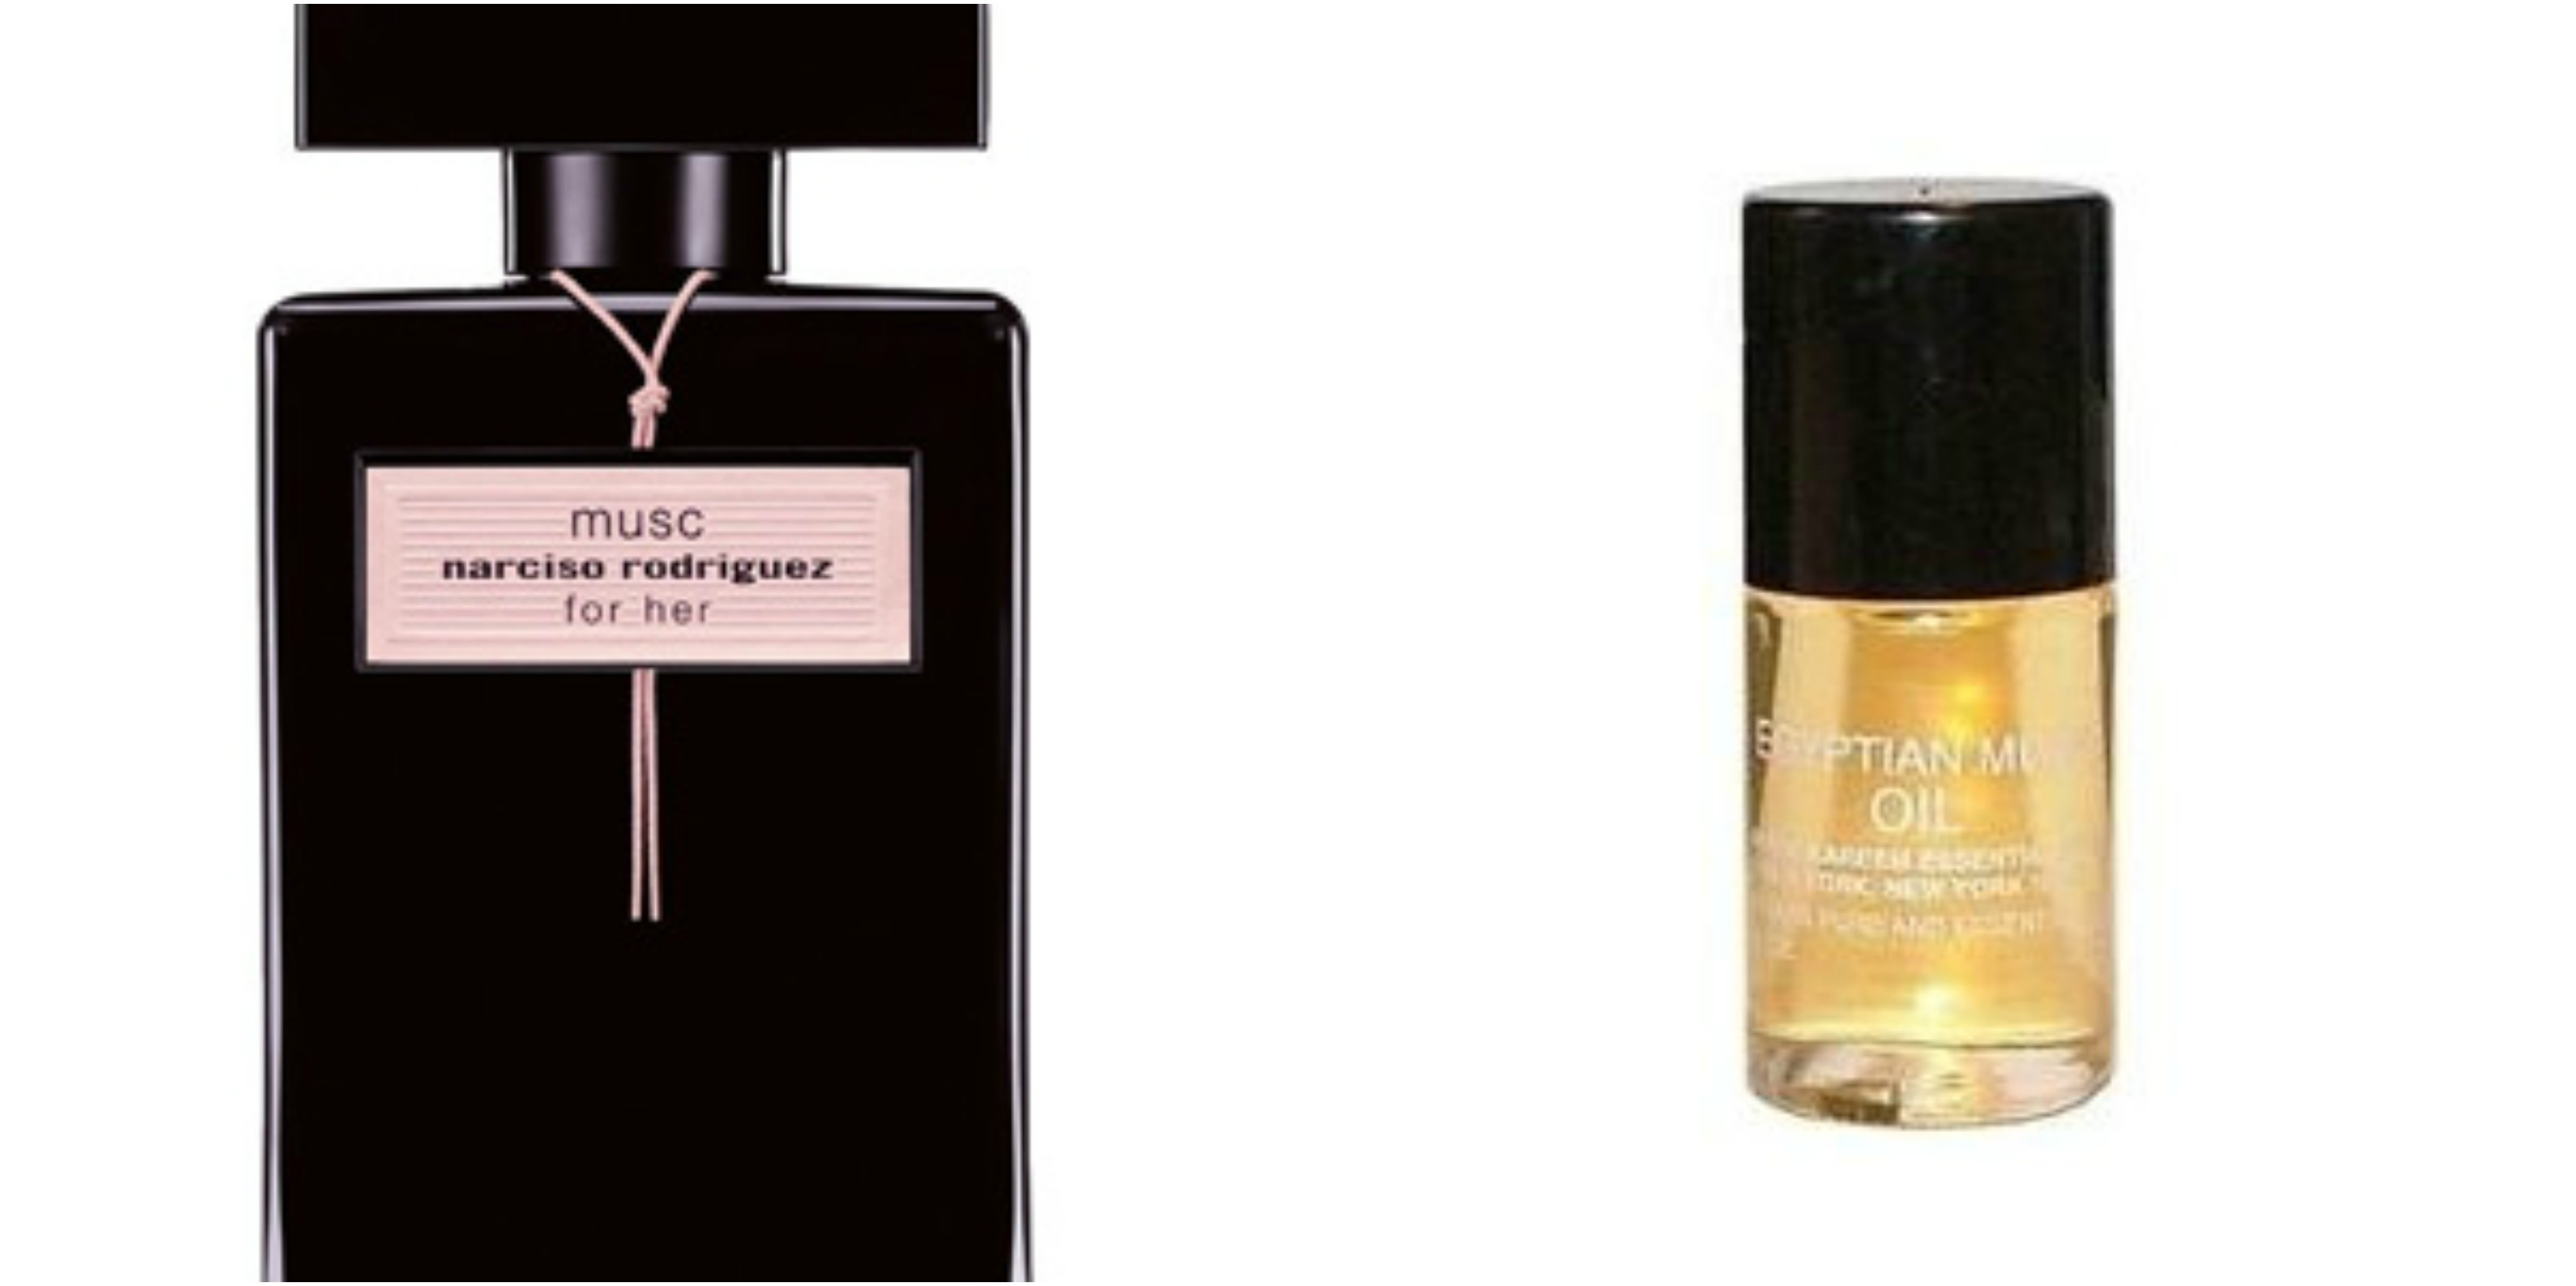 c9554b12b Flacons of Narciso Rodriguez Musc for Her Oil Perfume and Abdul Kareem  Egyptian Musk Oil